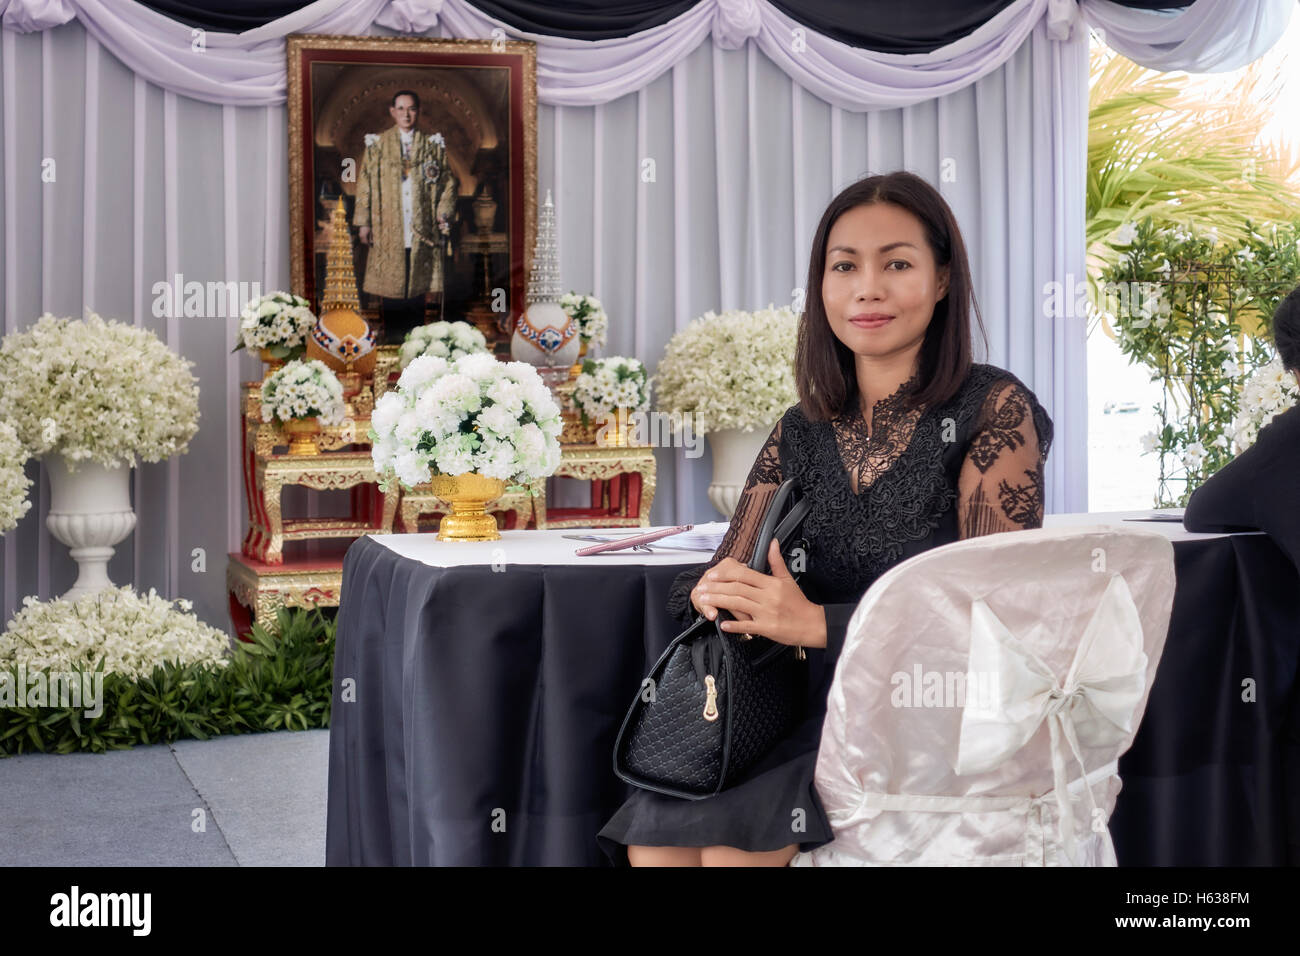 Thailand woman paying respect and mourning the death of King Bhumibol Adulyadej died 13th October 2016 - Stock Image